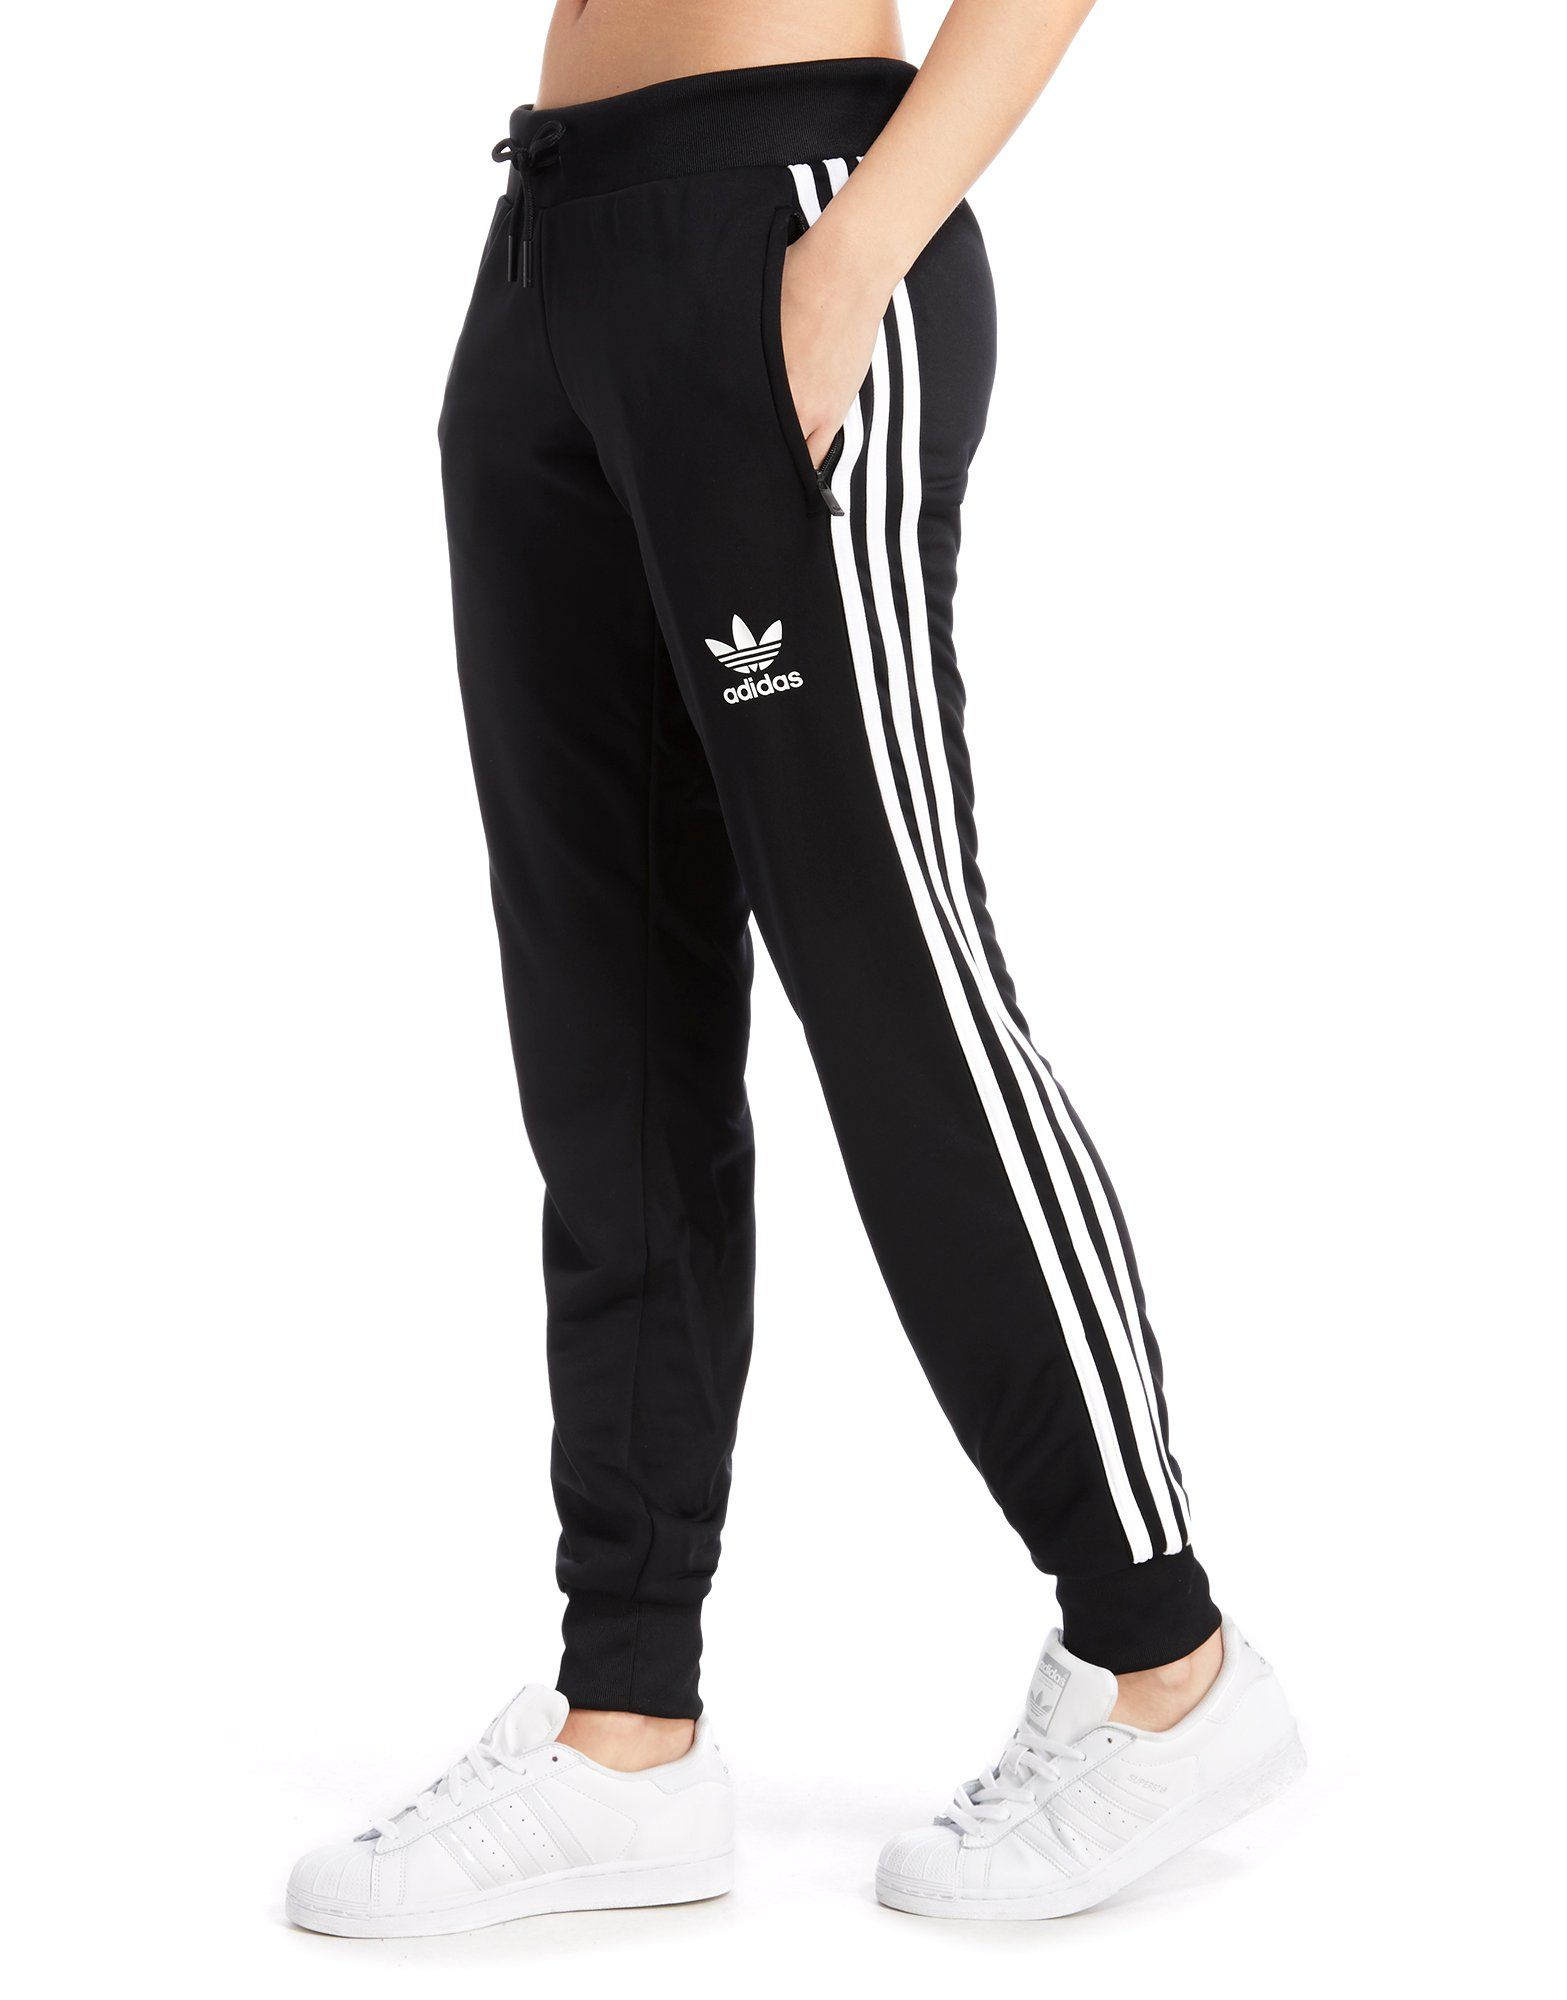 Womens Adidas Originals Sale